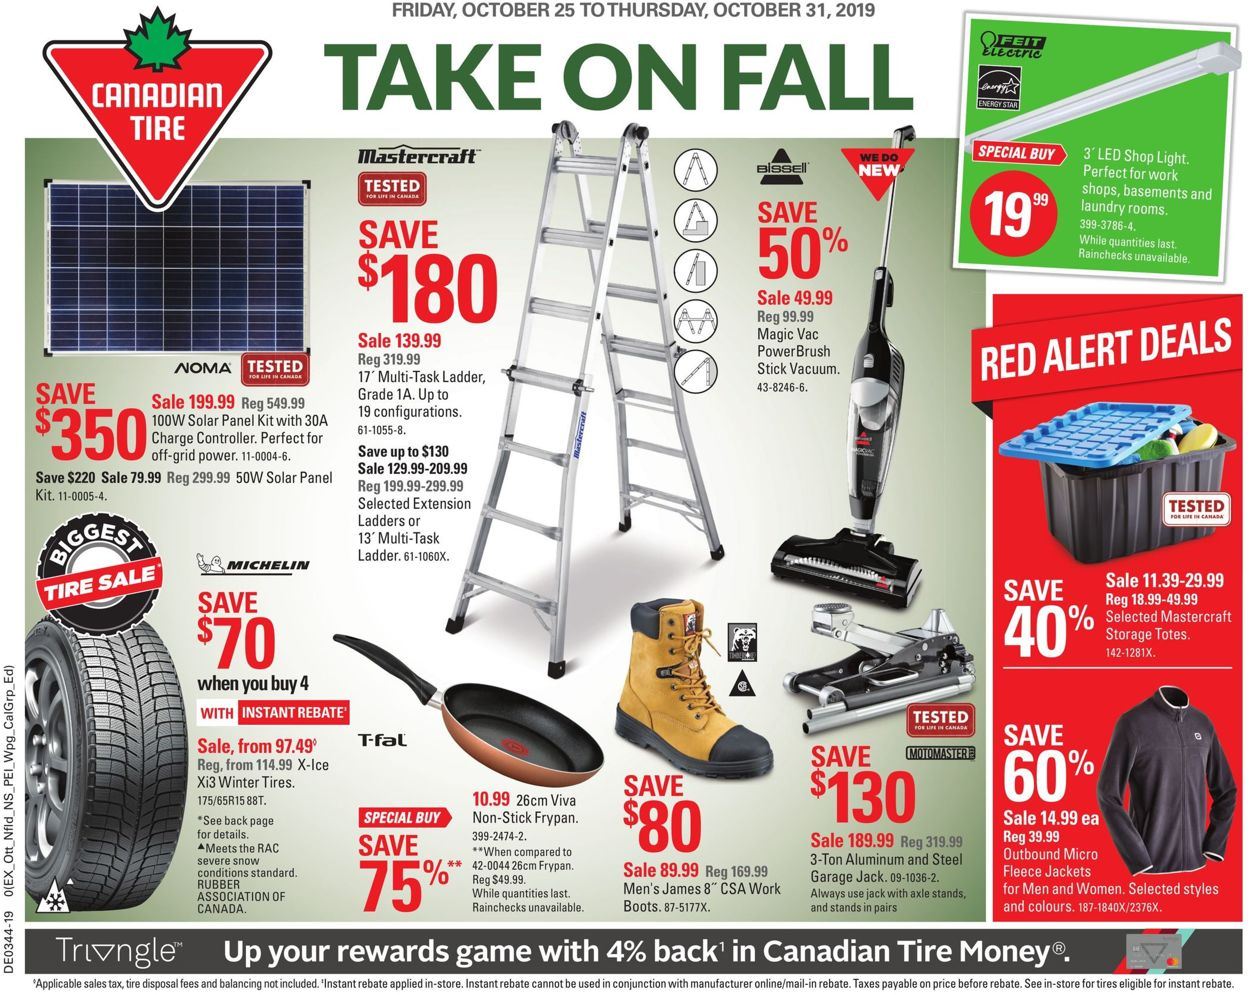 Canadian Tire Flyer - 10/25-10/31/2019